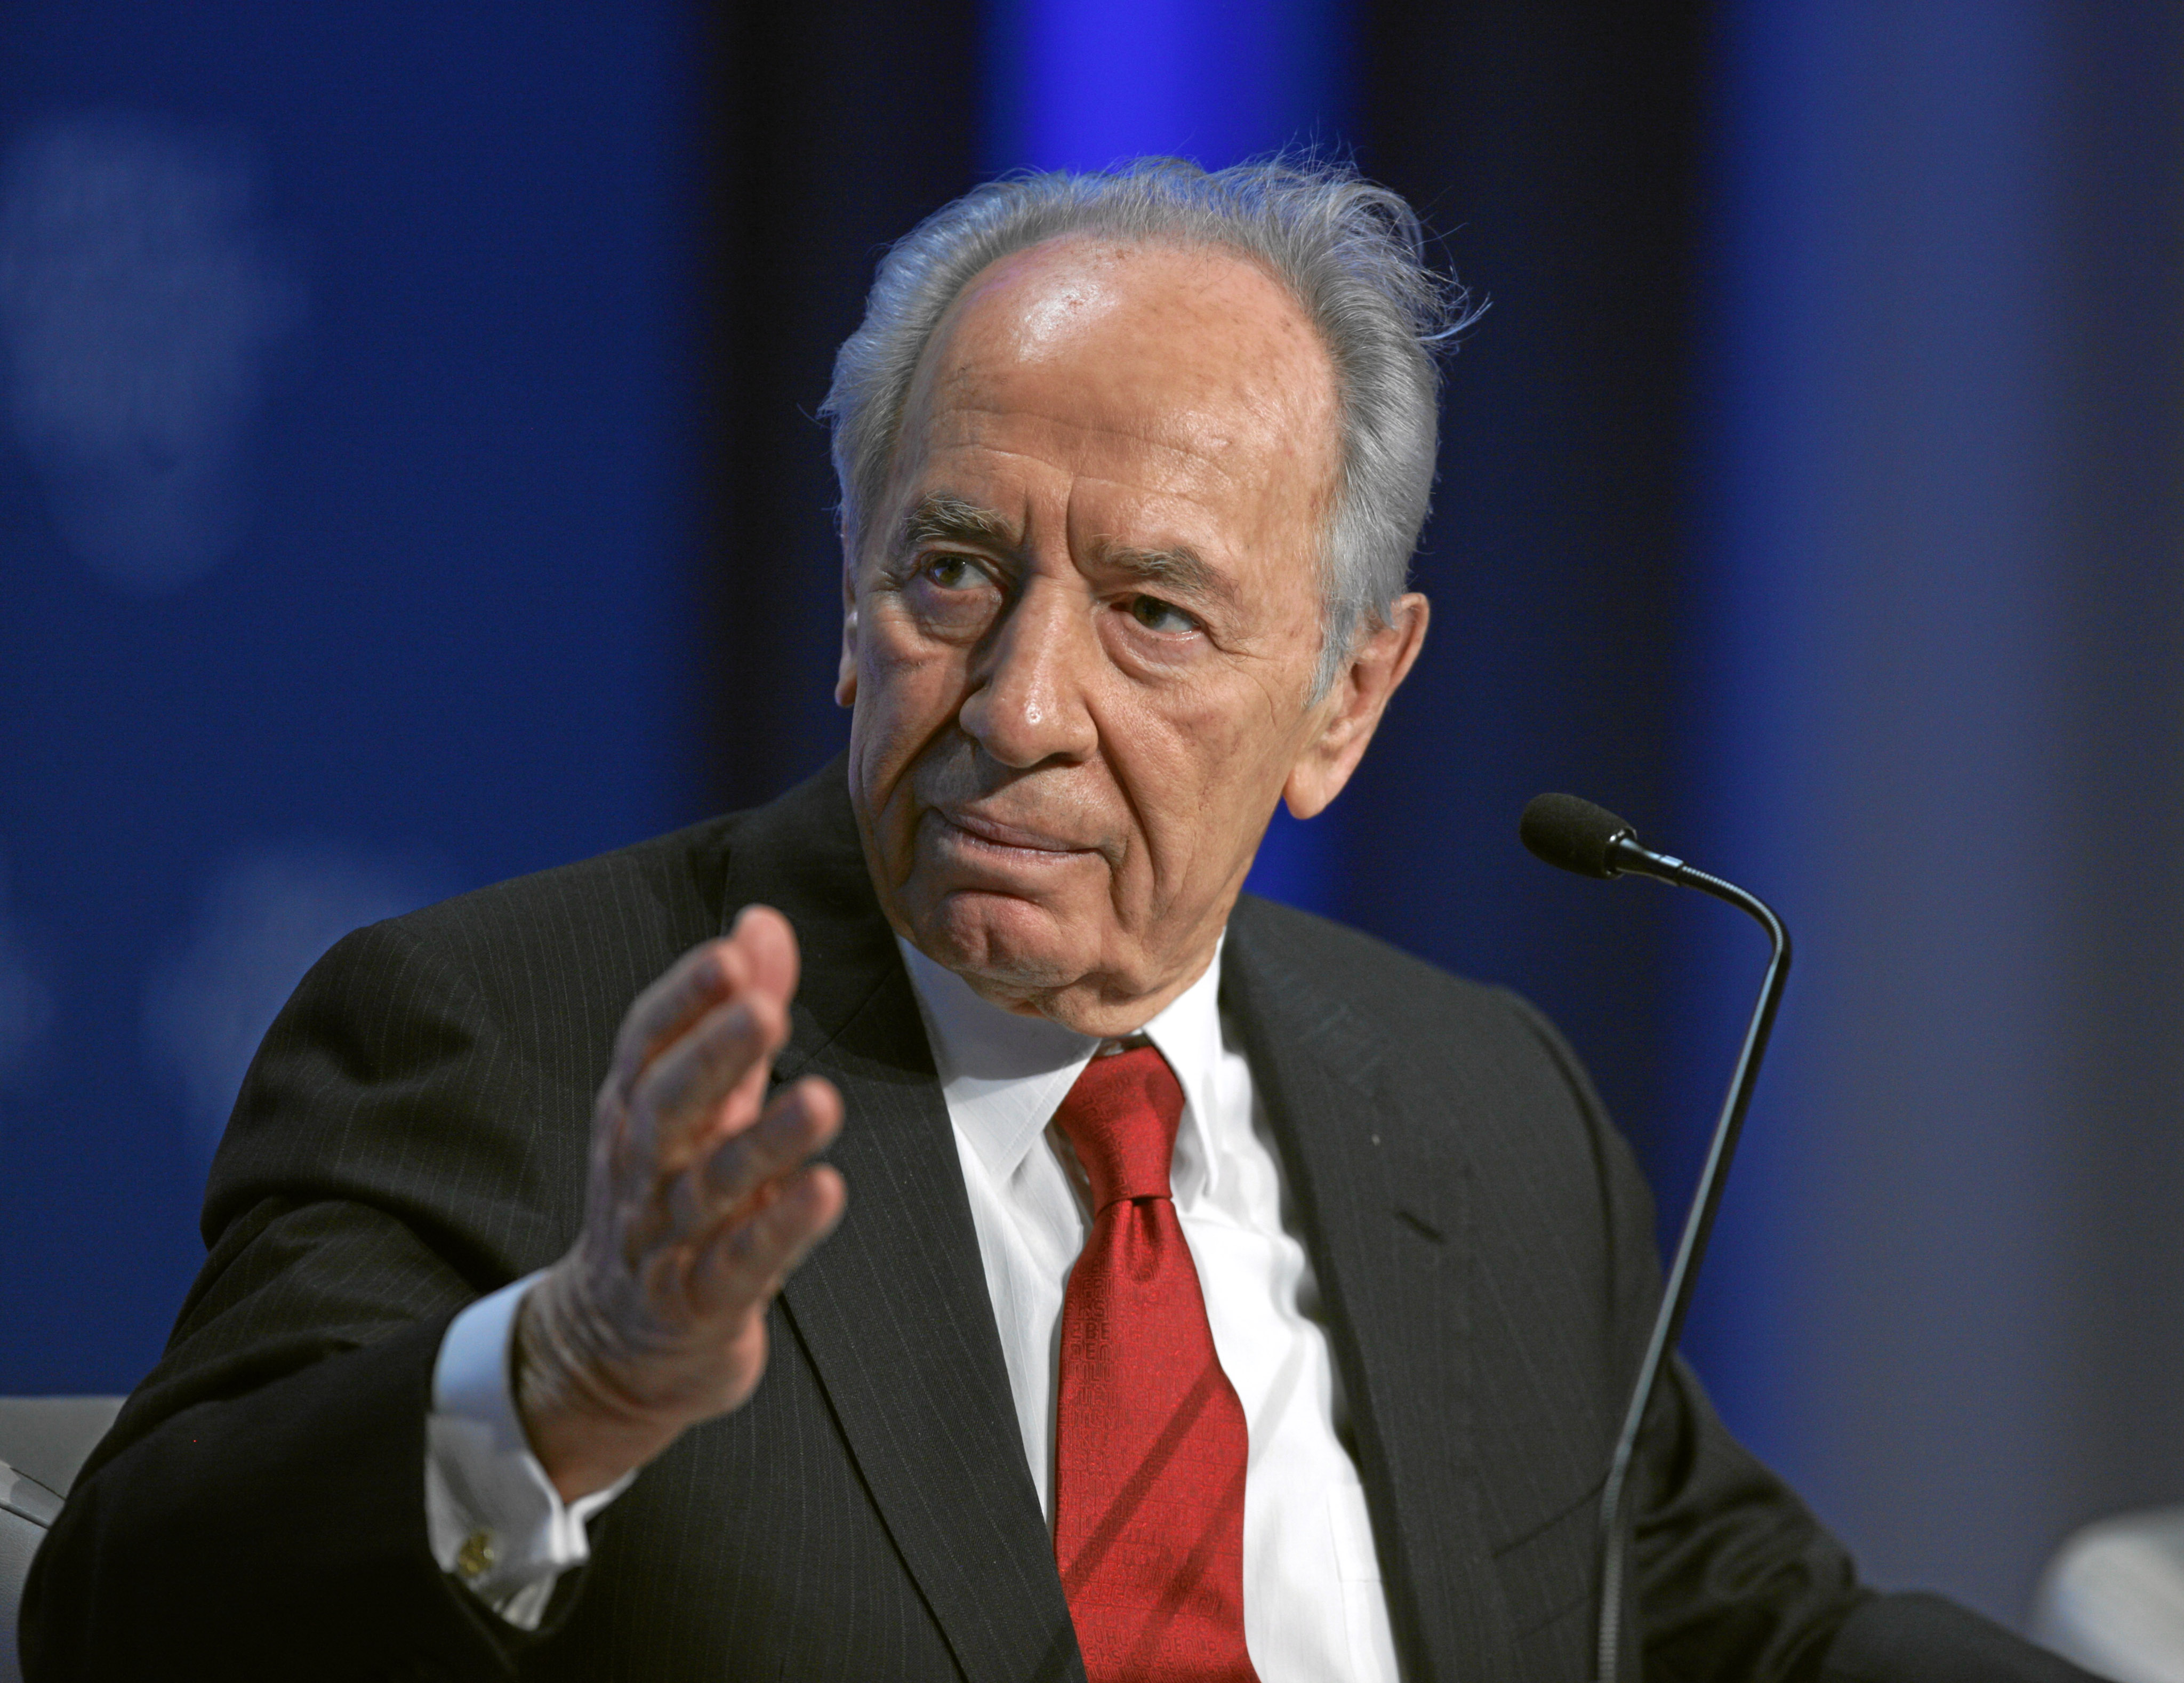 http://dic.academic.ru/pictures/wiki/files/83/Shimon_Peres_at_2009_WEF.jpg